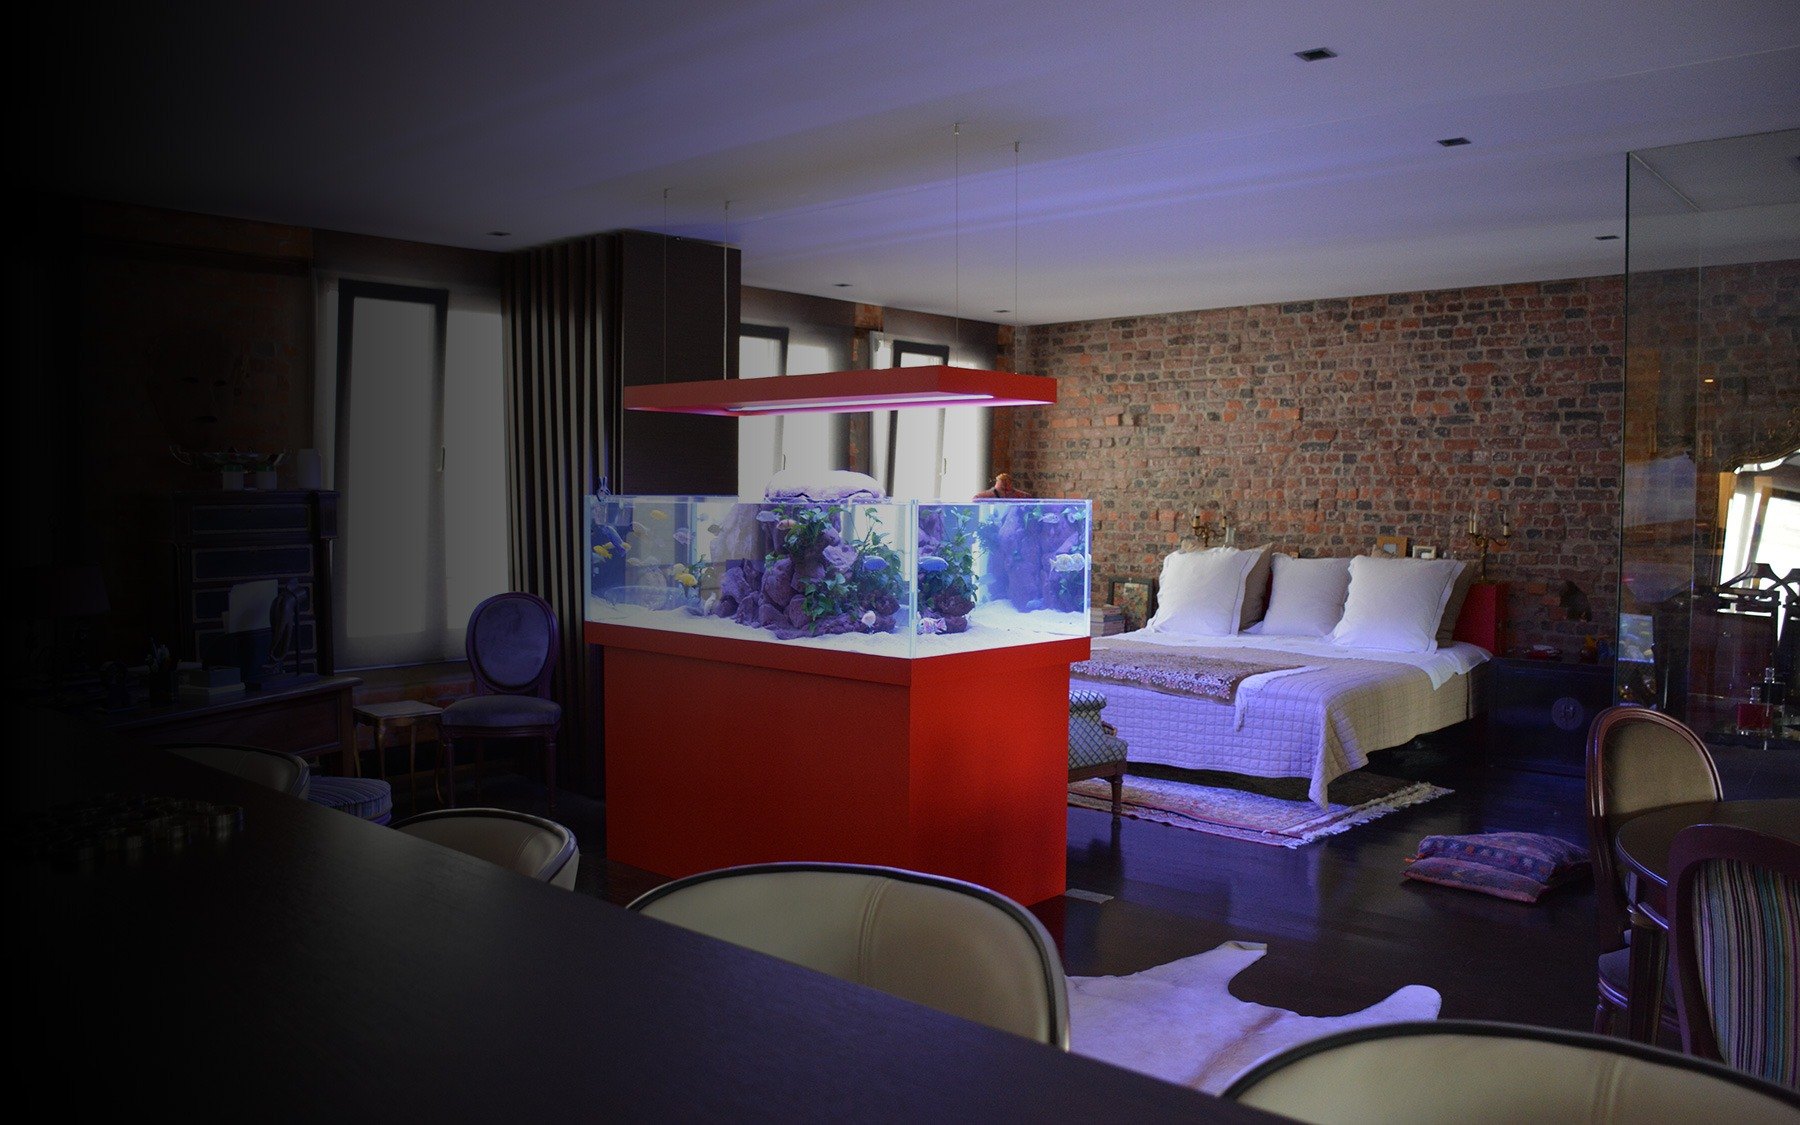 Aquarium sur mesure ouvert oc an d 39 interieur for Aquarium interieur